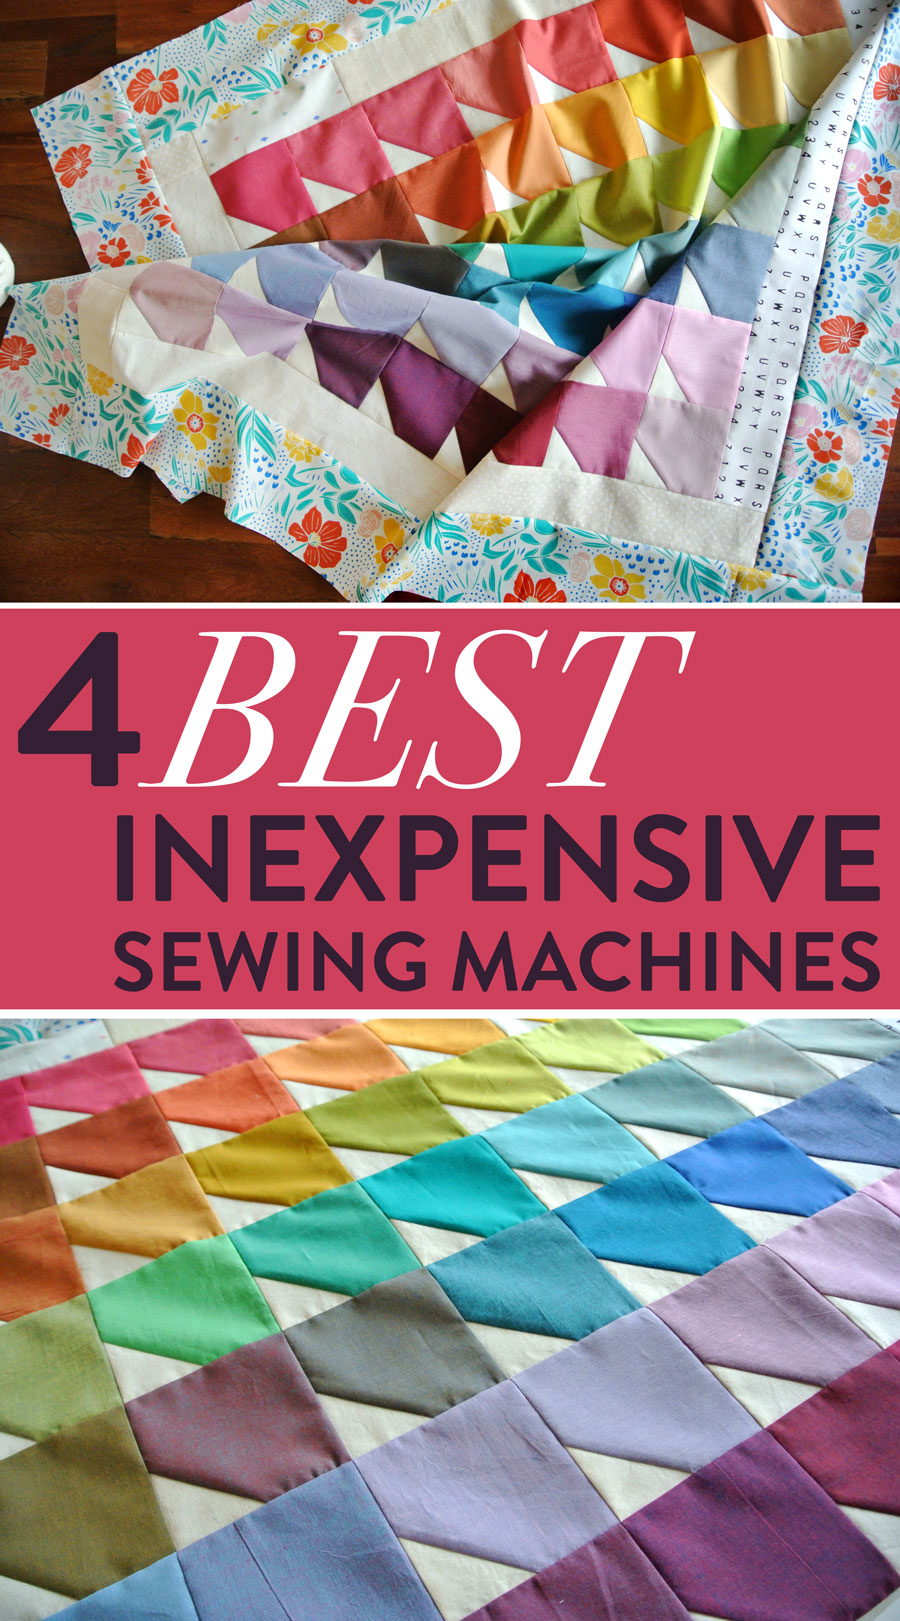 4-best-inexpensive-sewing-machines